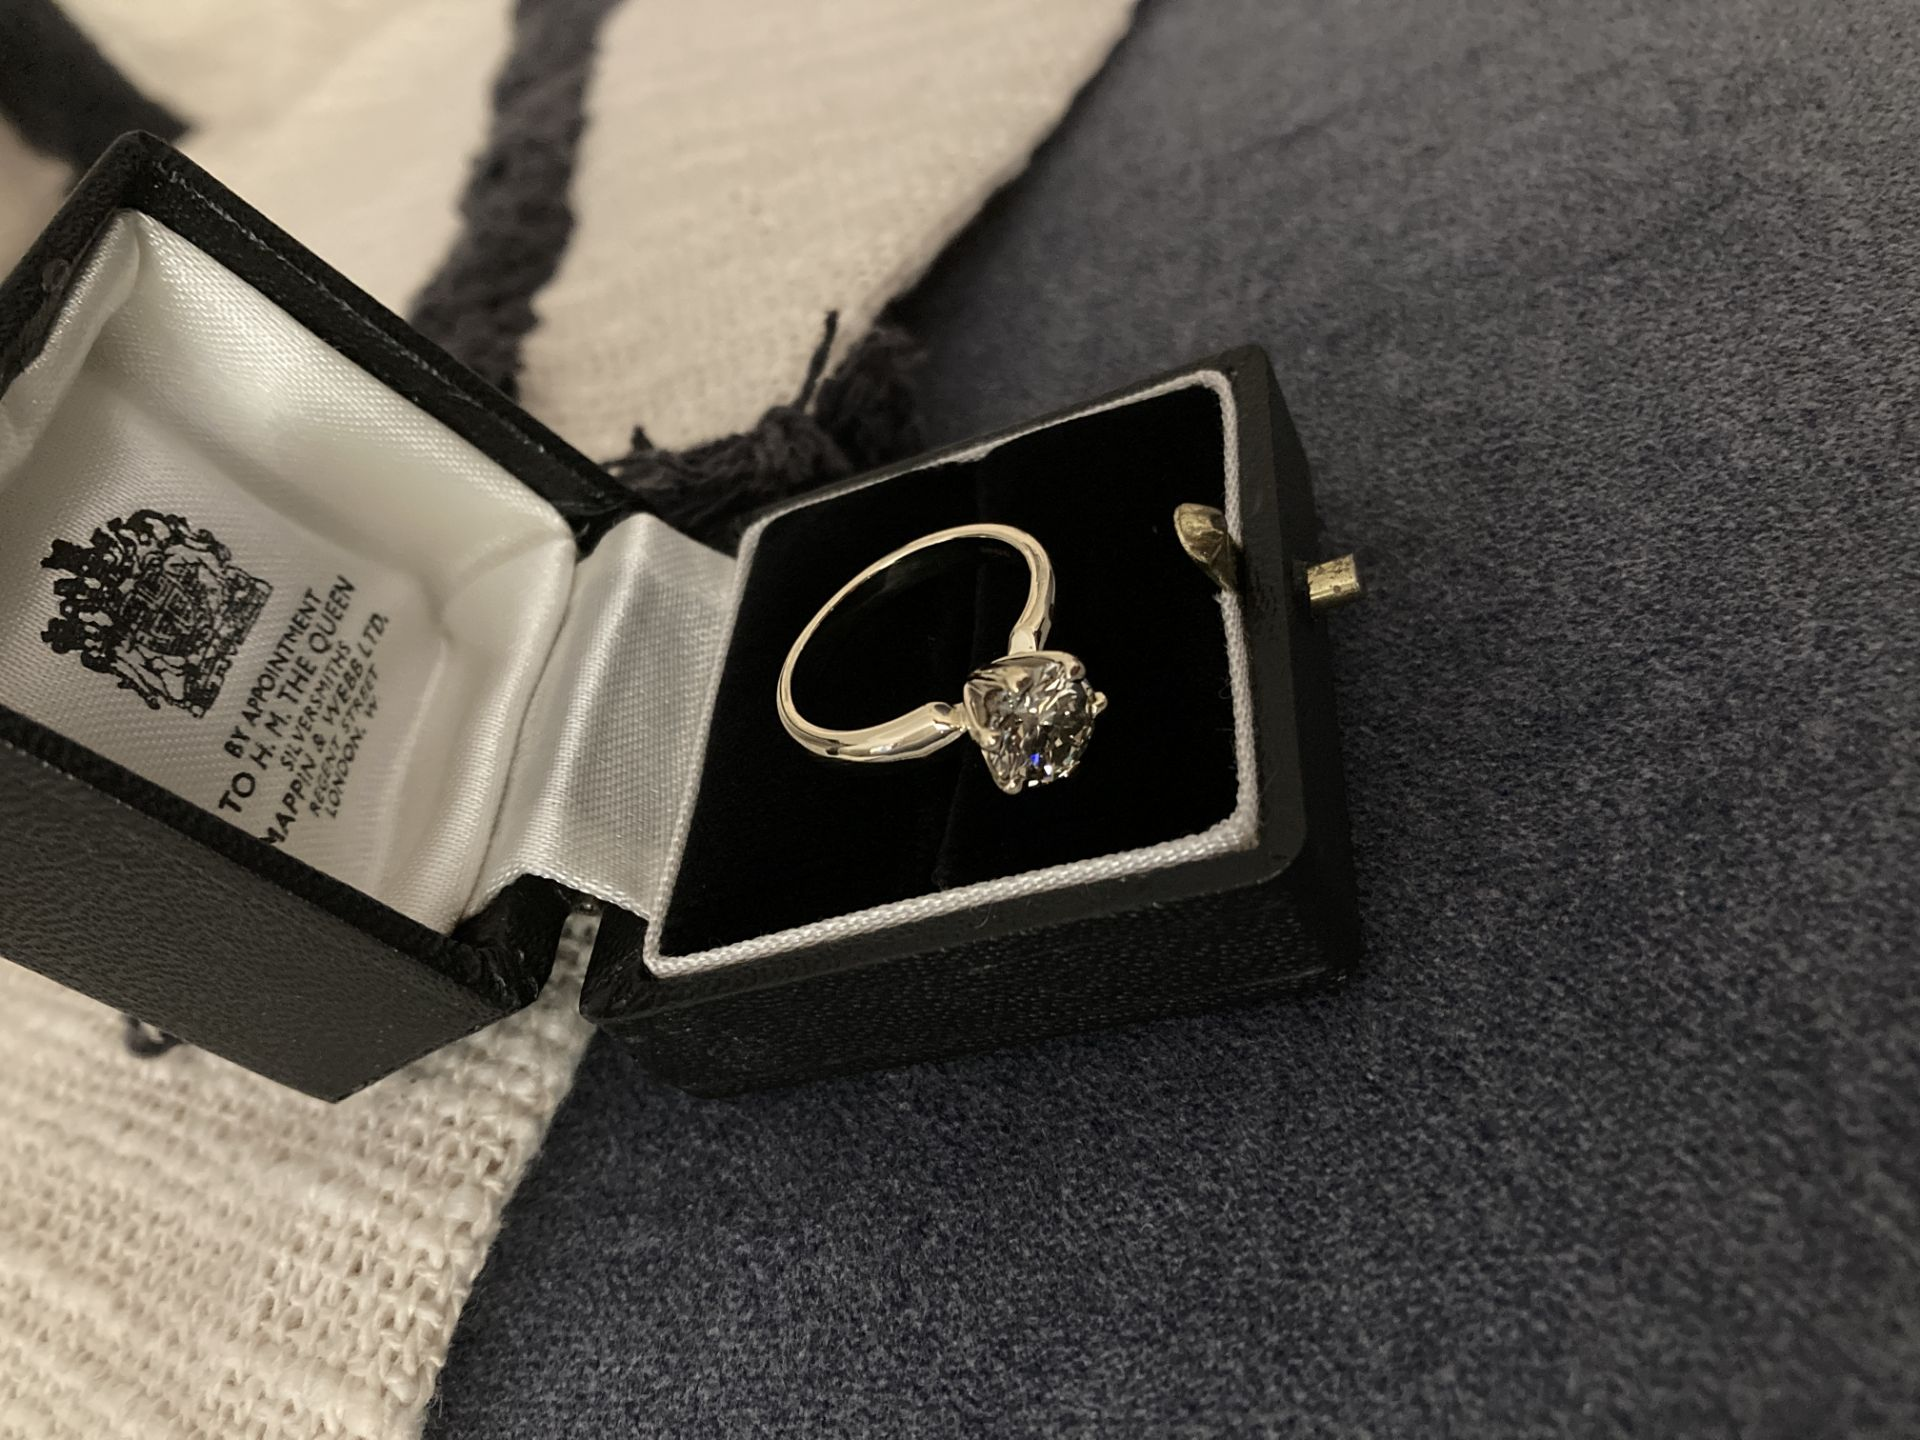 1.54CT DIAMOND SOLITAIRE RING Y. GOLD (ROUND BRILLIANT) - 2012 VALUATION £6,200 INCLUDED - Image 8 of 14